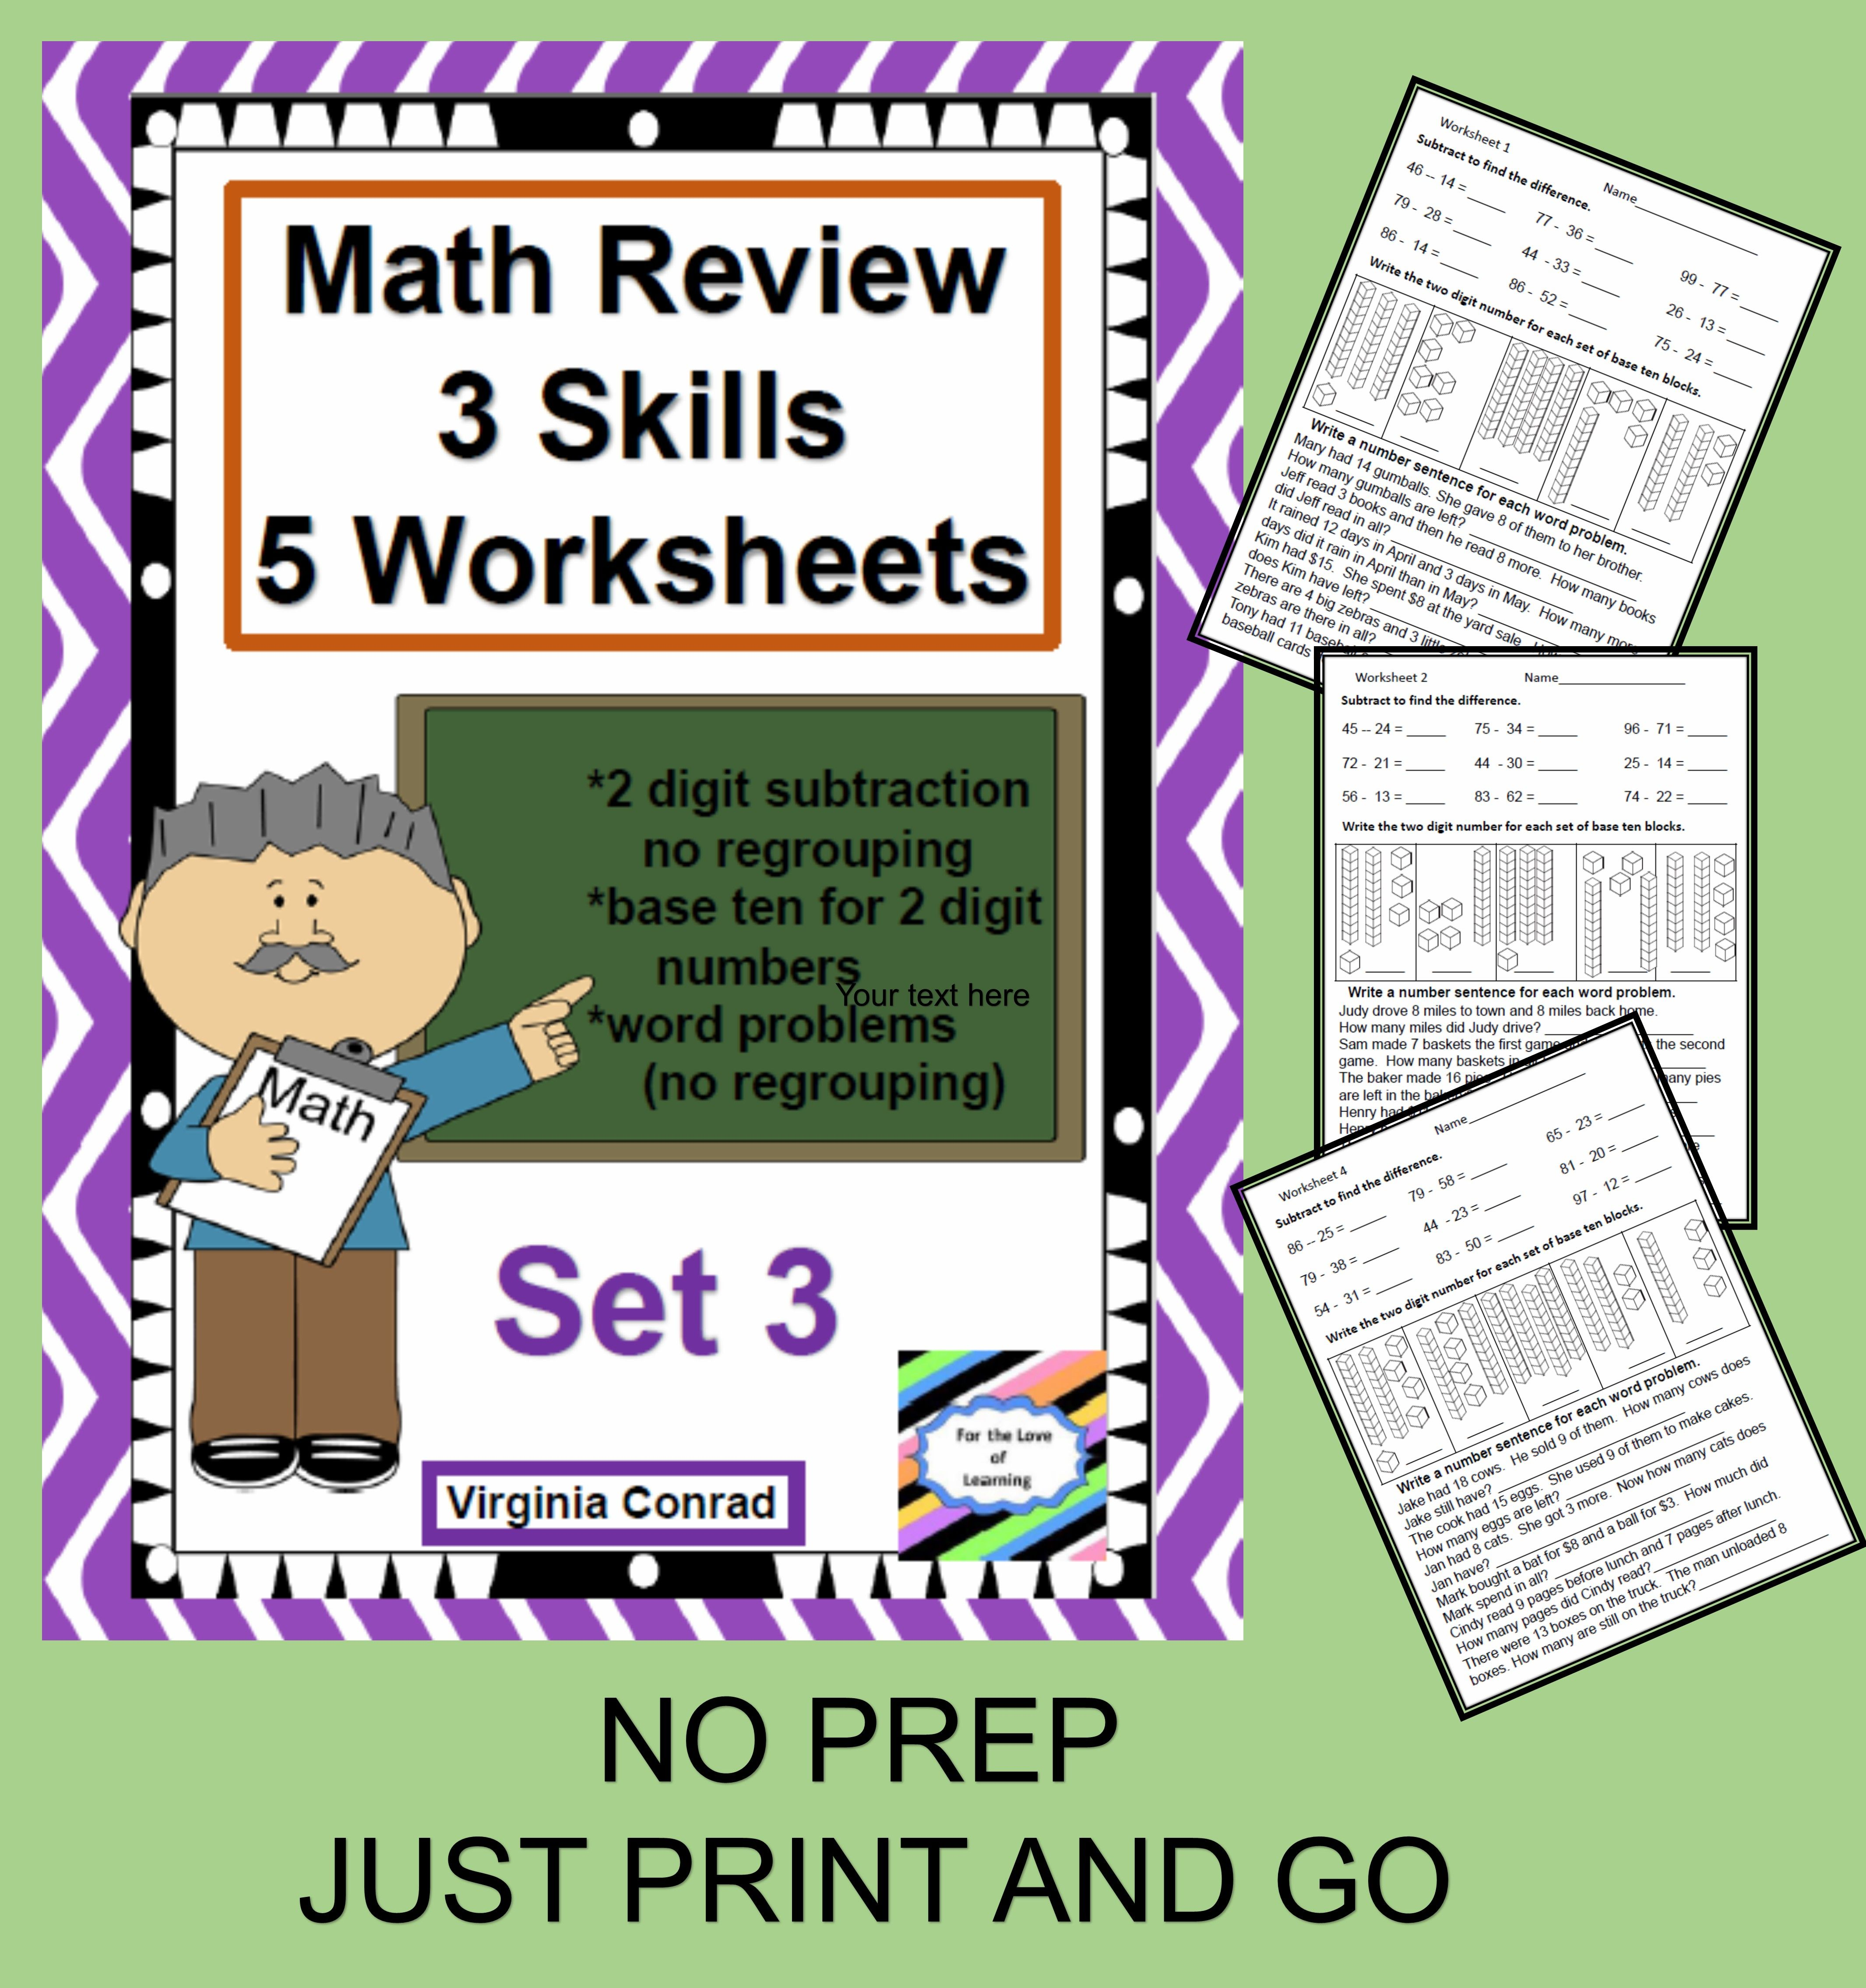 Math Review Worksheets 3 Skills For 5 Days Set 3